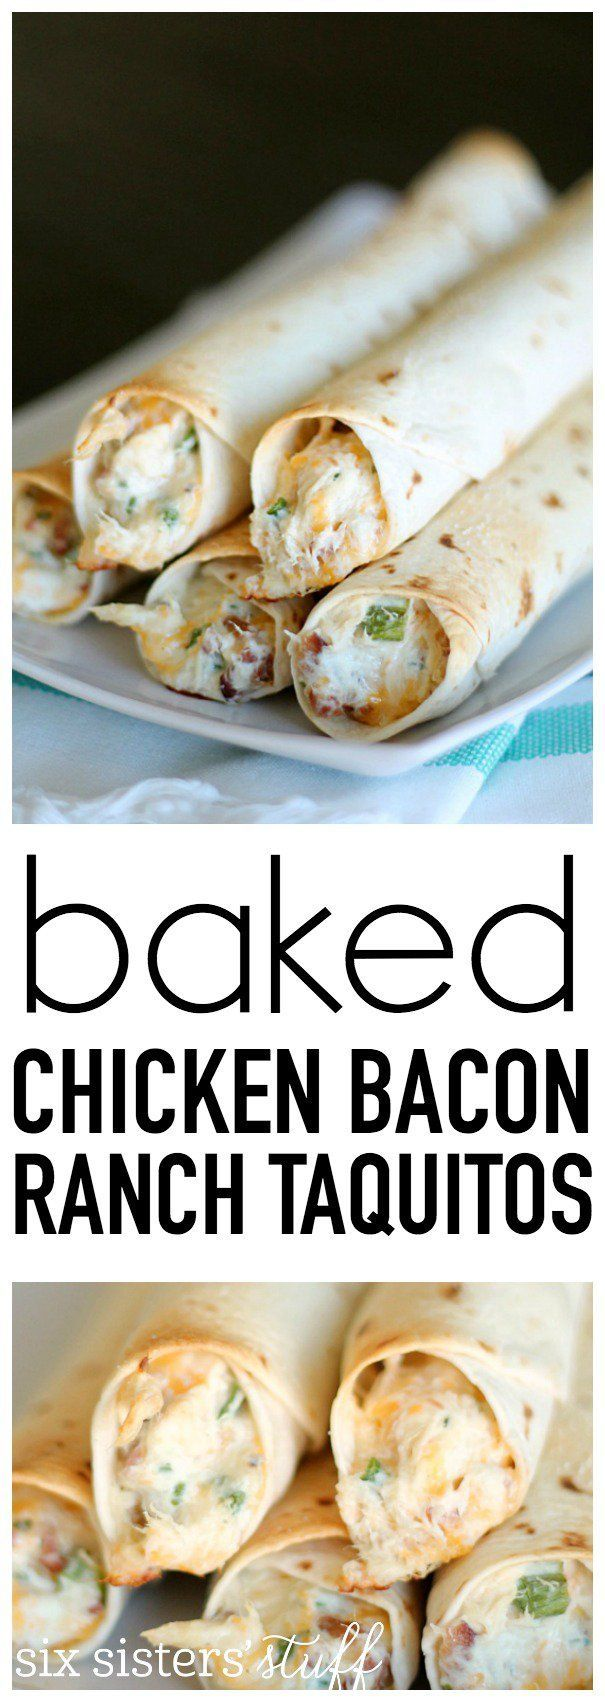 Baked Chicken Bacon Ranch Taquitos from http://SixSistersStuff.com. So many delicious flavors in one recipe!